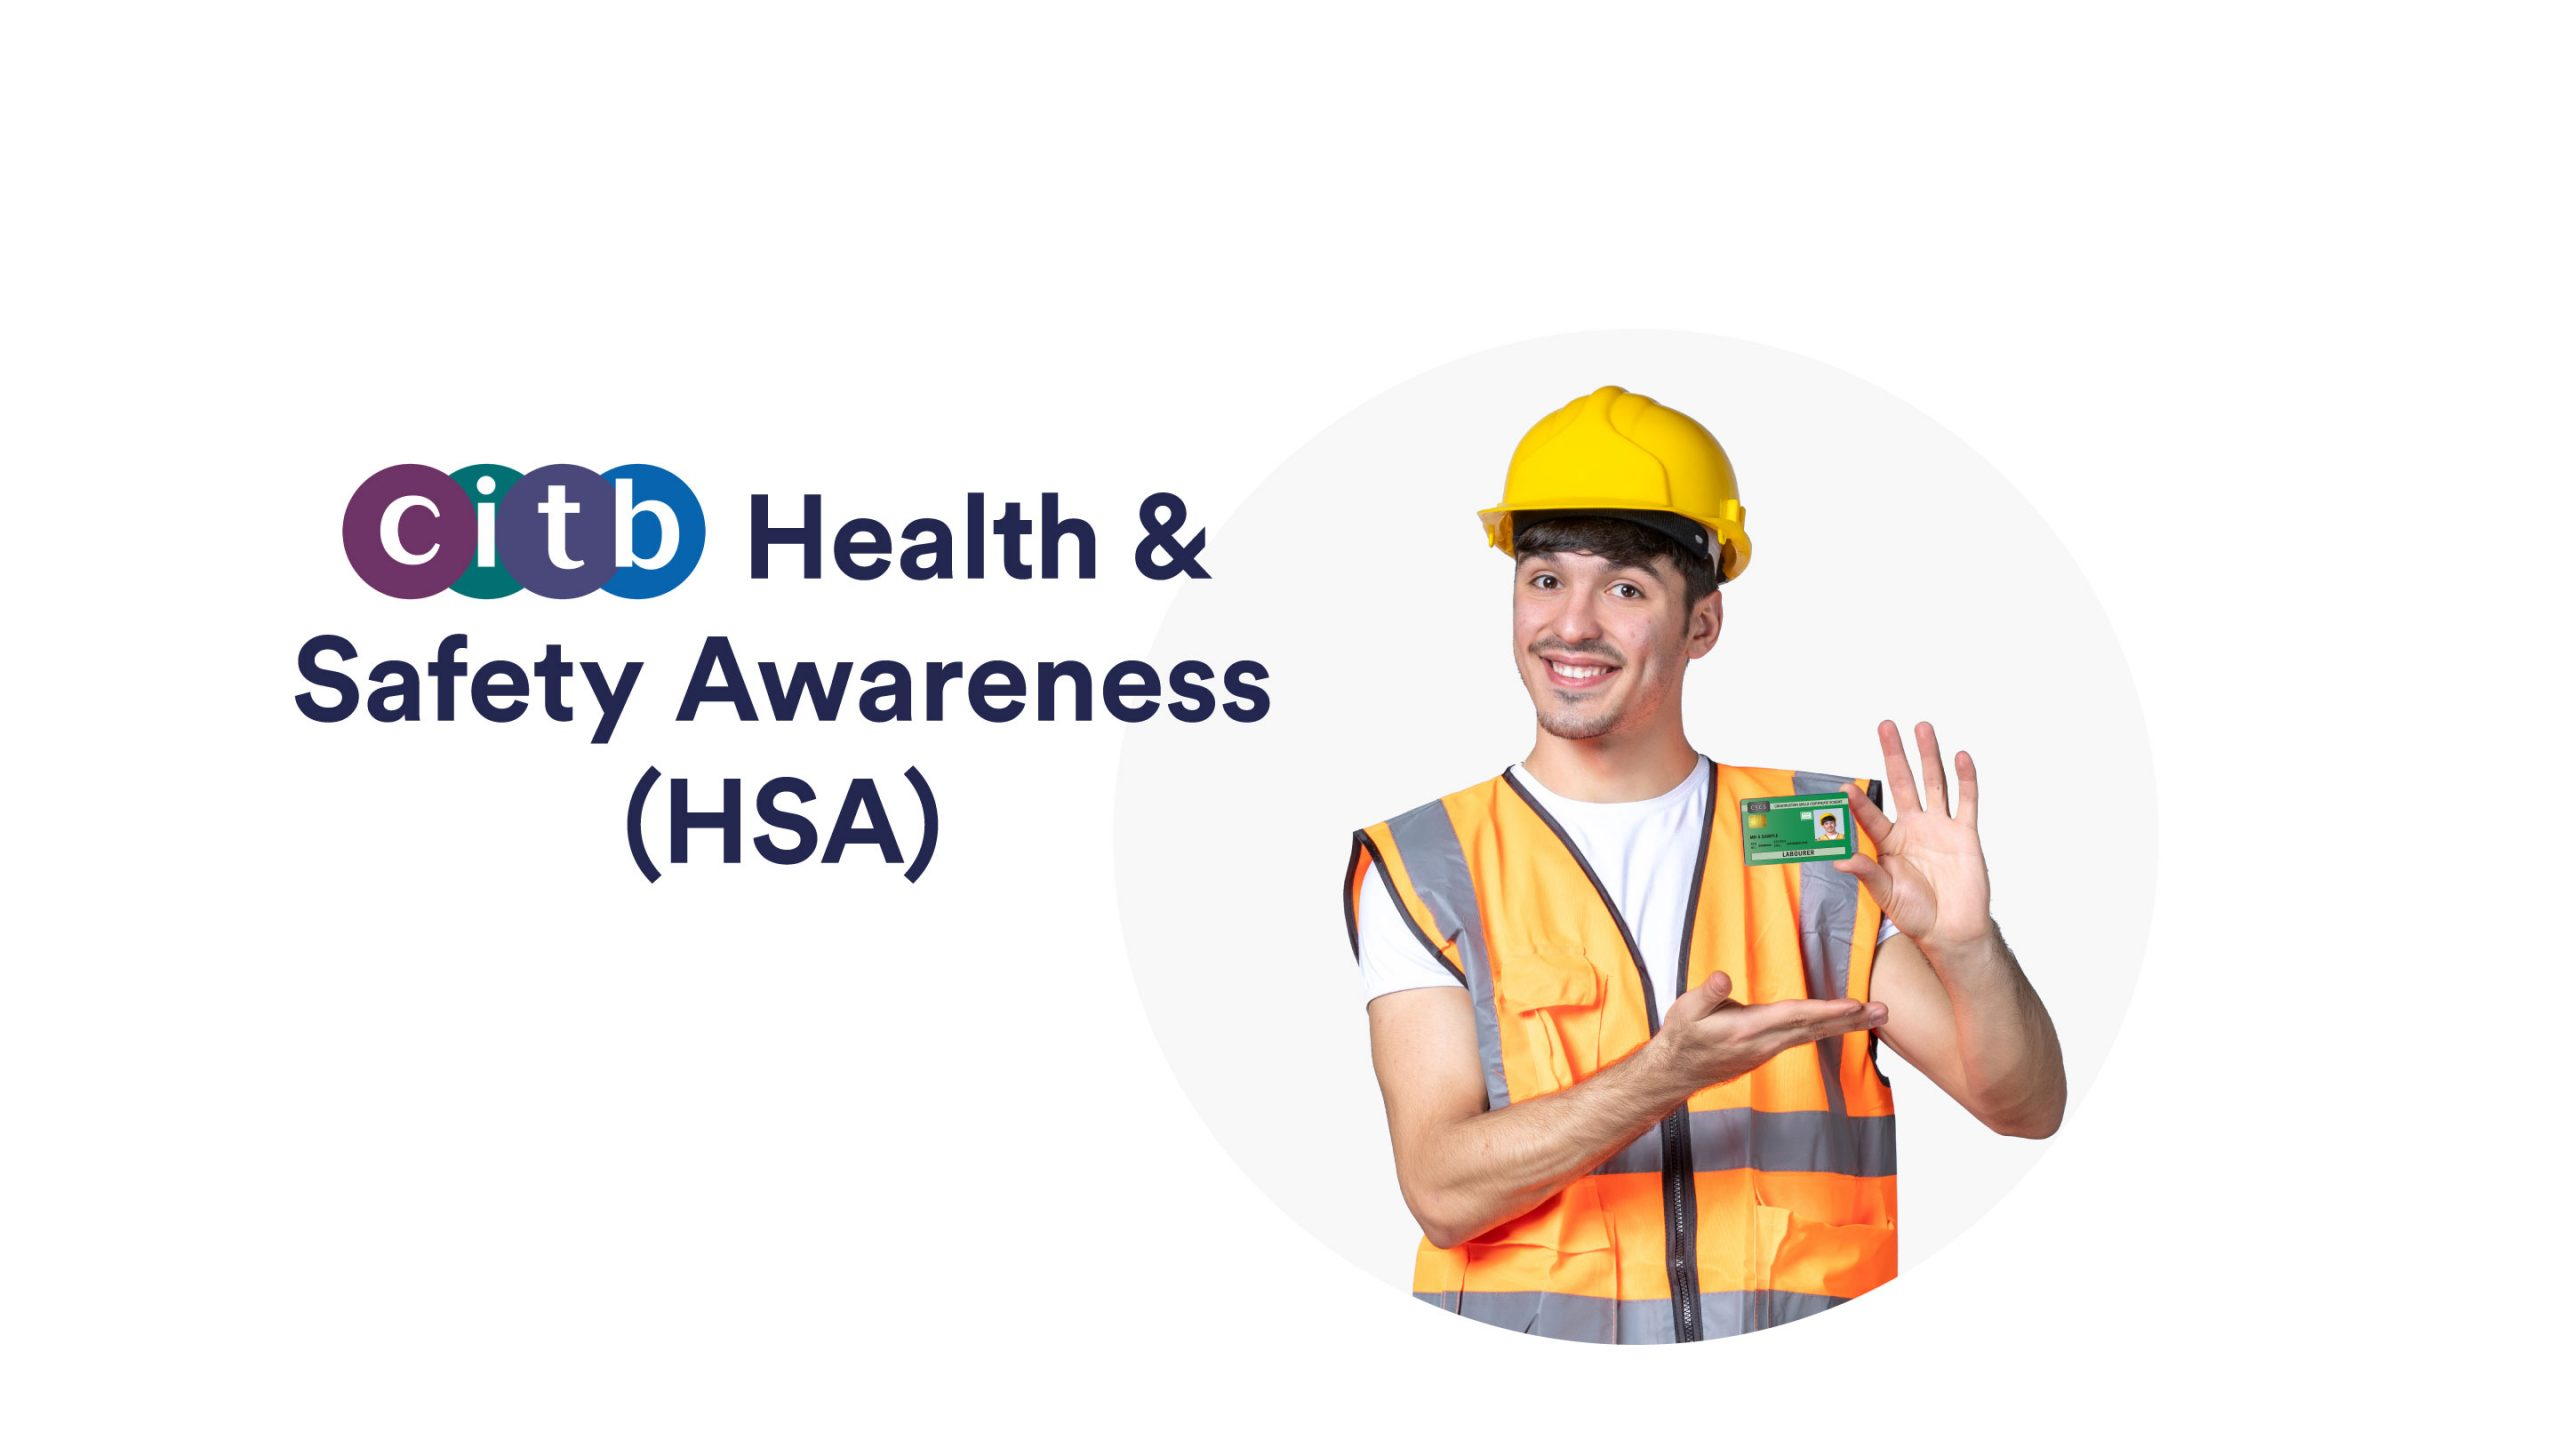 CITB_health_and_safety_awareness_hsa_training_course_in_stoke_on_trent_to_get_green_labourer_card_white